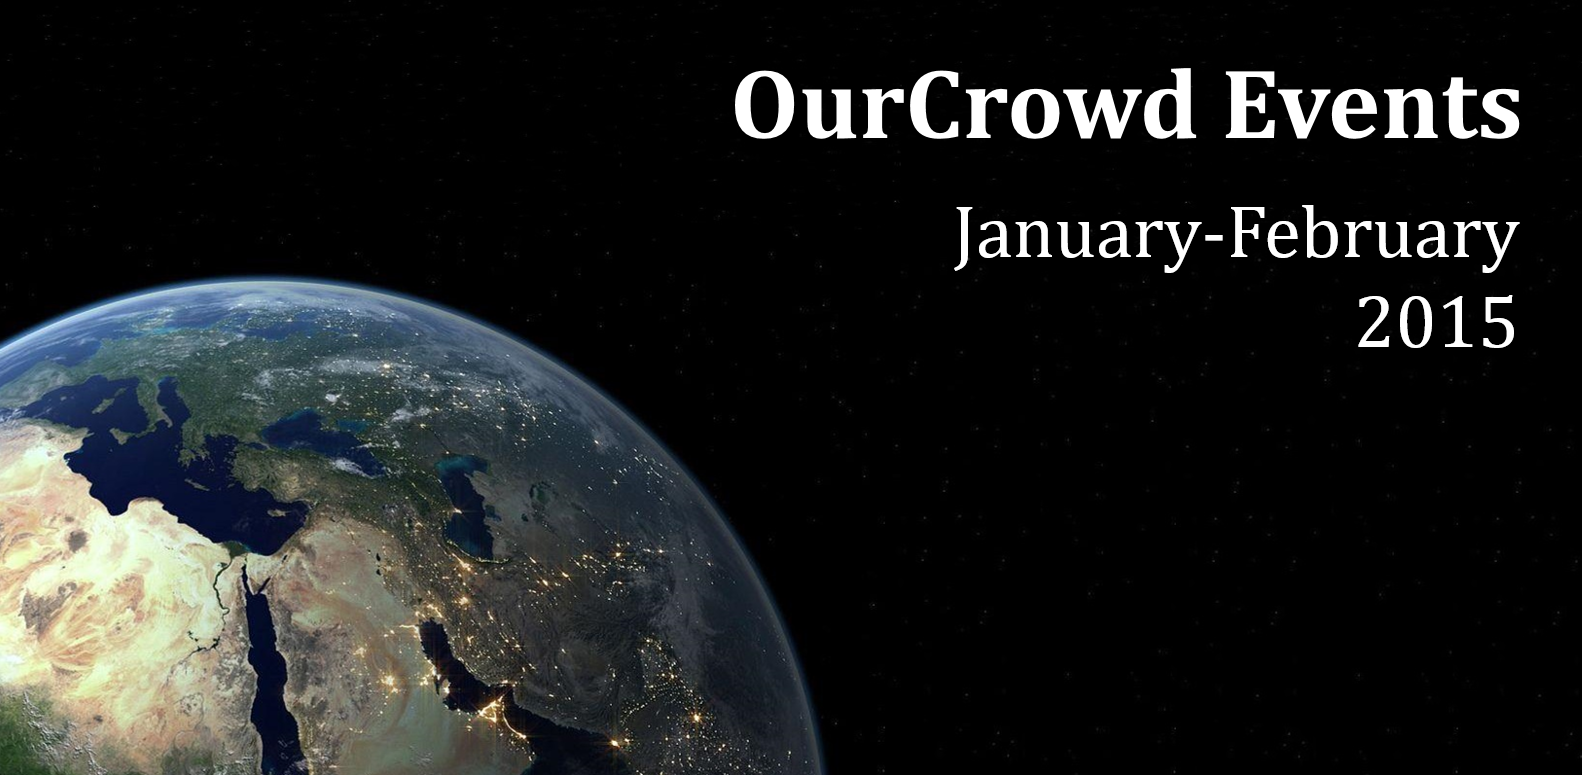 OurCrowd Events January-February 2015